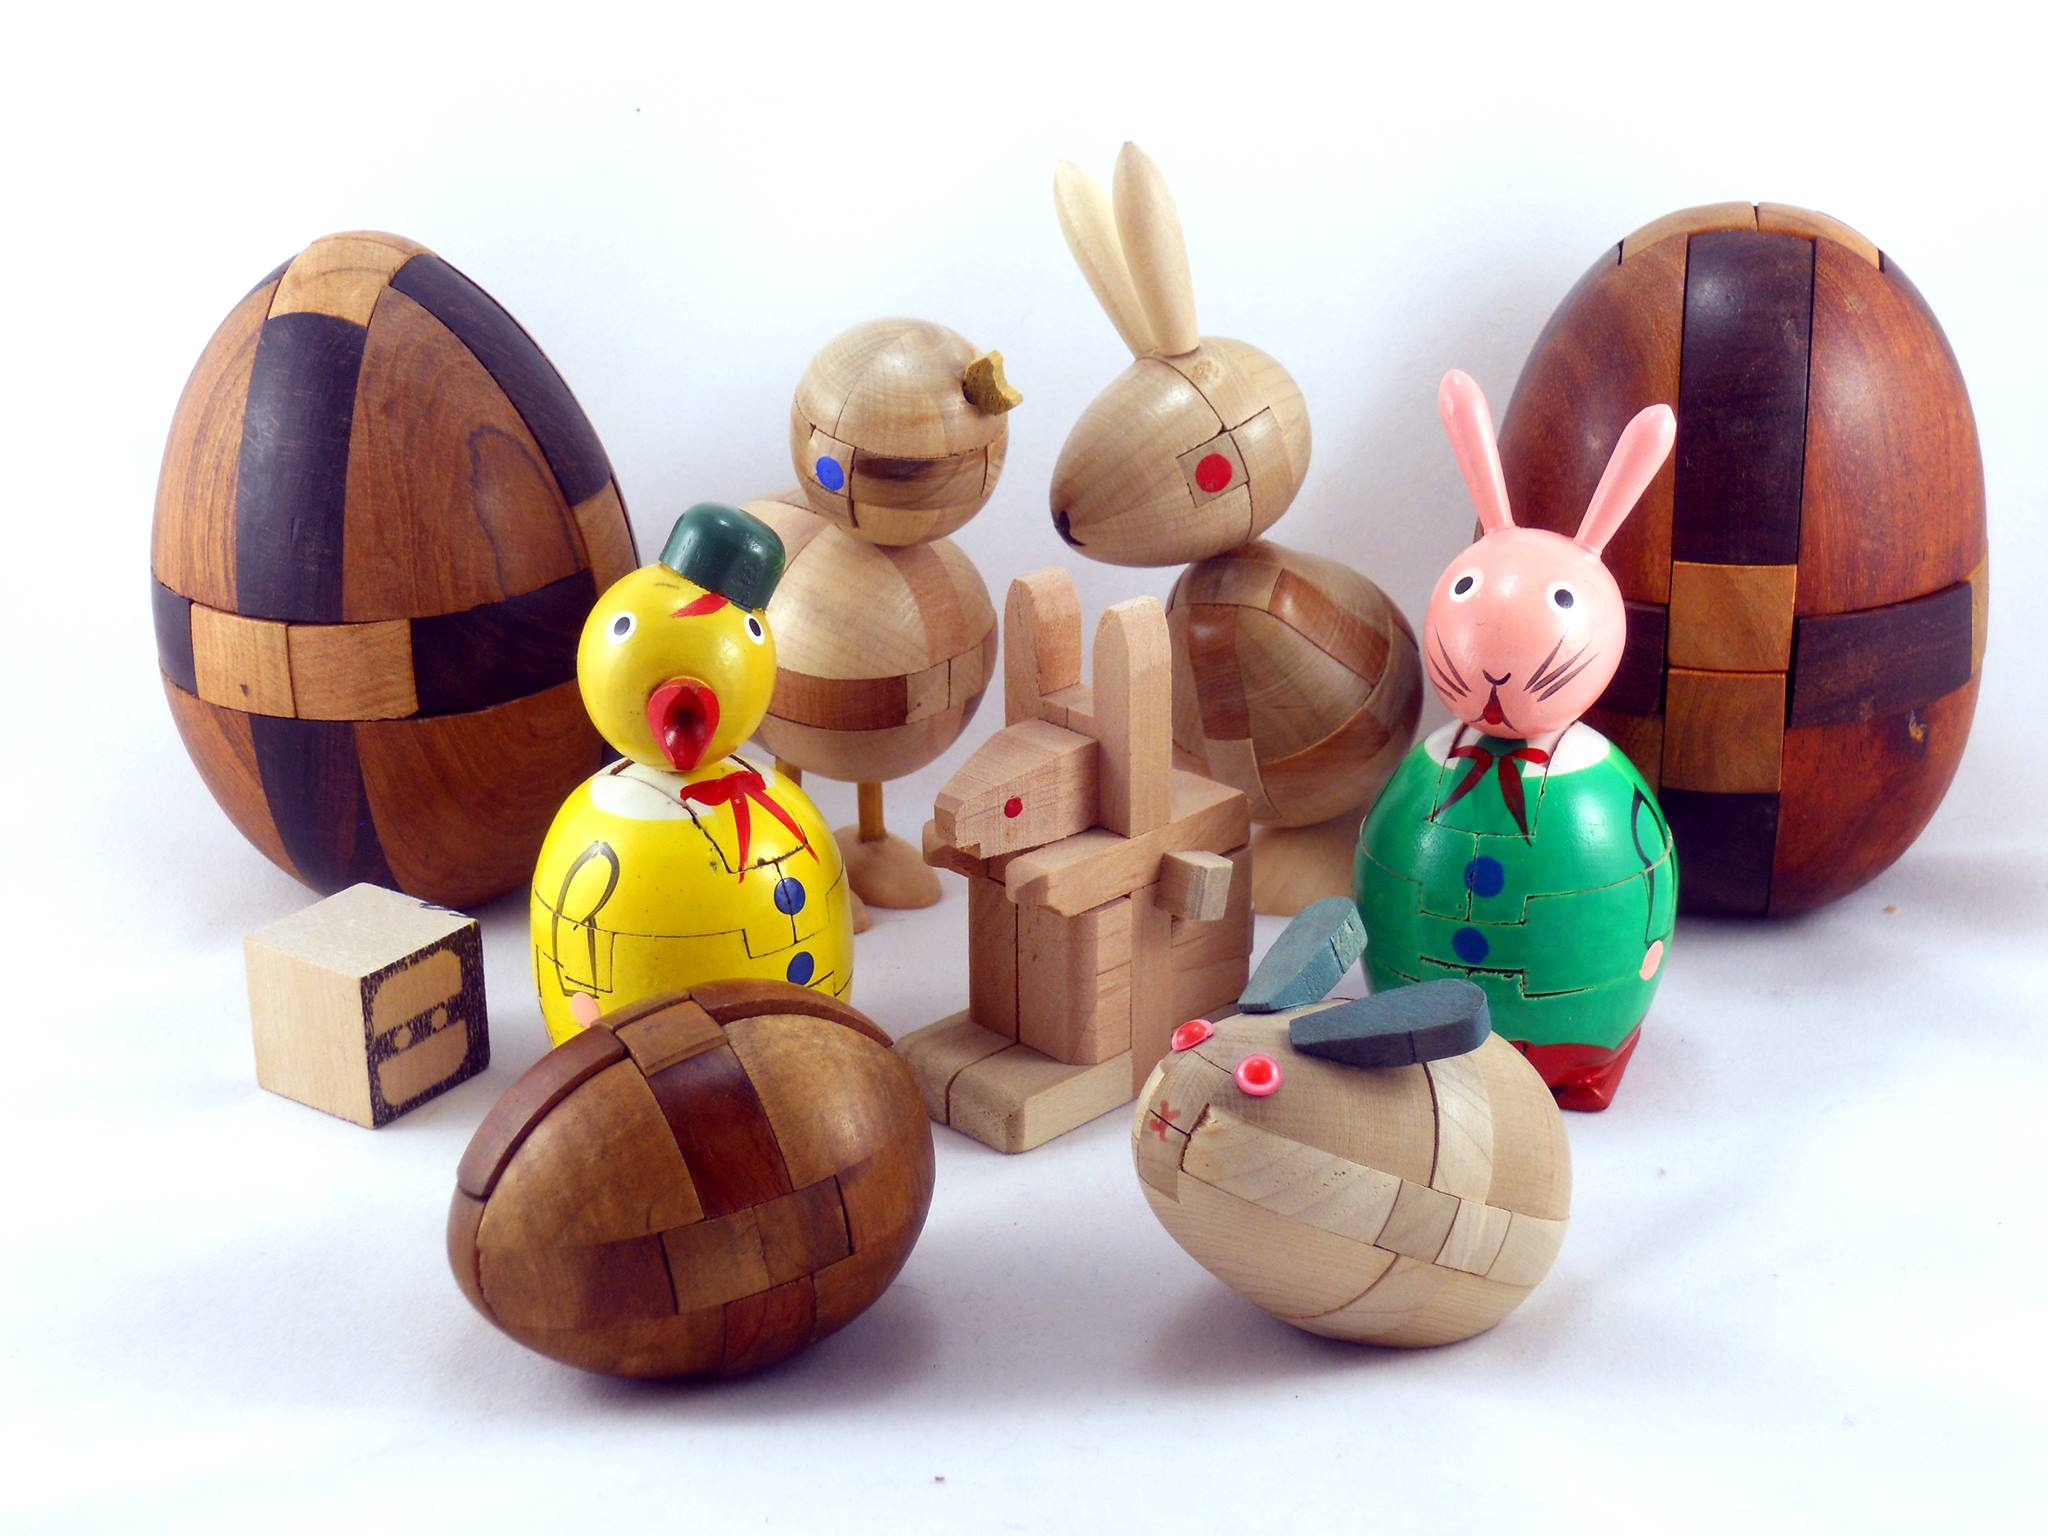 The two painted figures are from Shackman and were sold as Easter gifts.